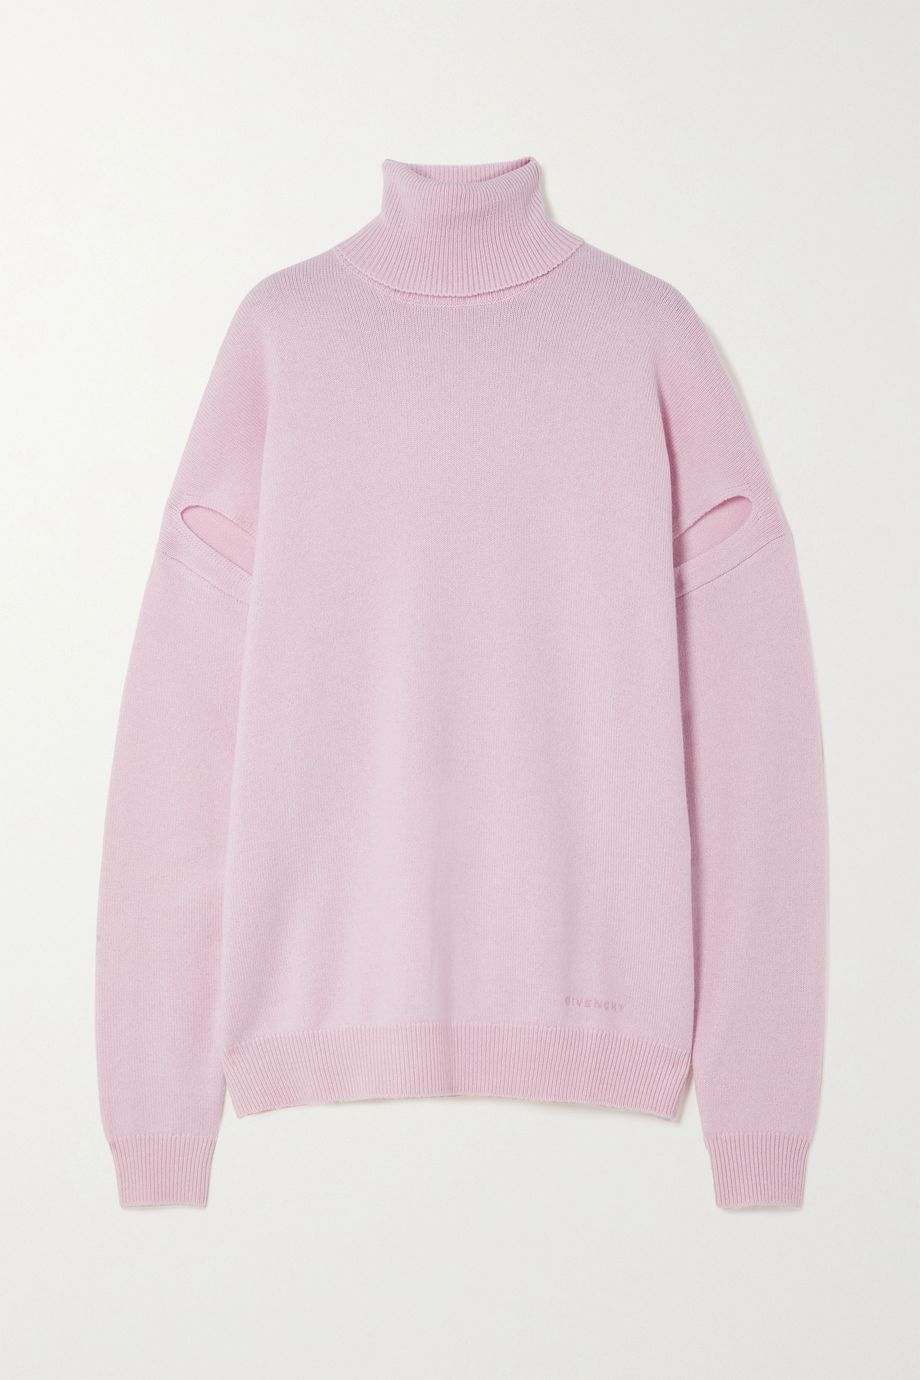 Givenchy Convertible cashmere turtleneck sweater